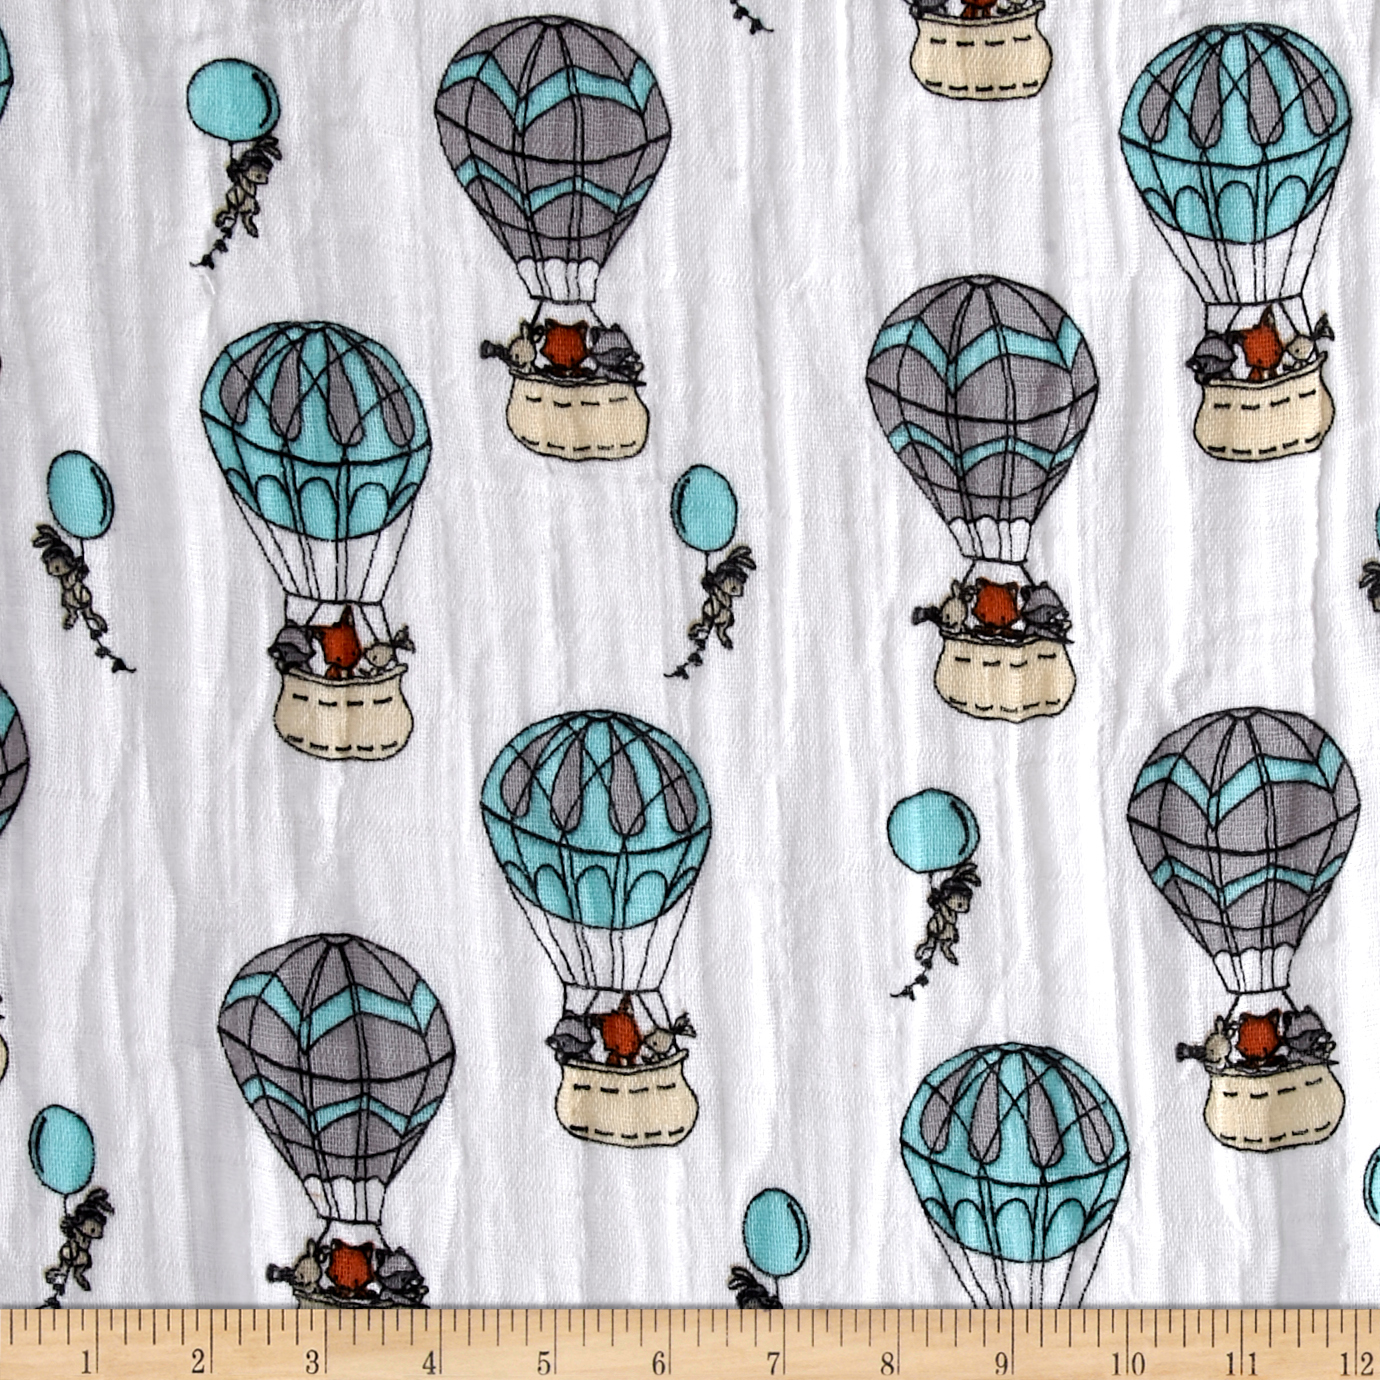 Embrace Double Gauze Sweet Melody Designs Up Up and Away Saltwater Fabric by Shannon in USA